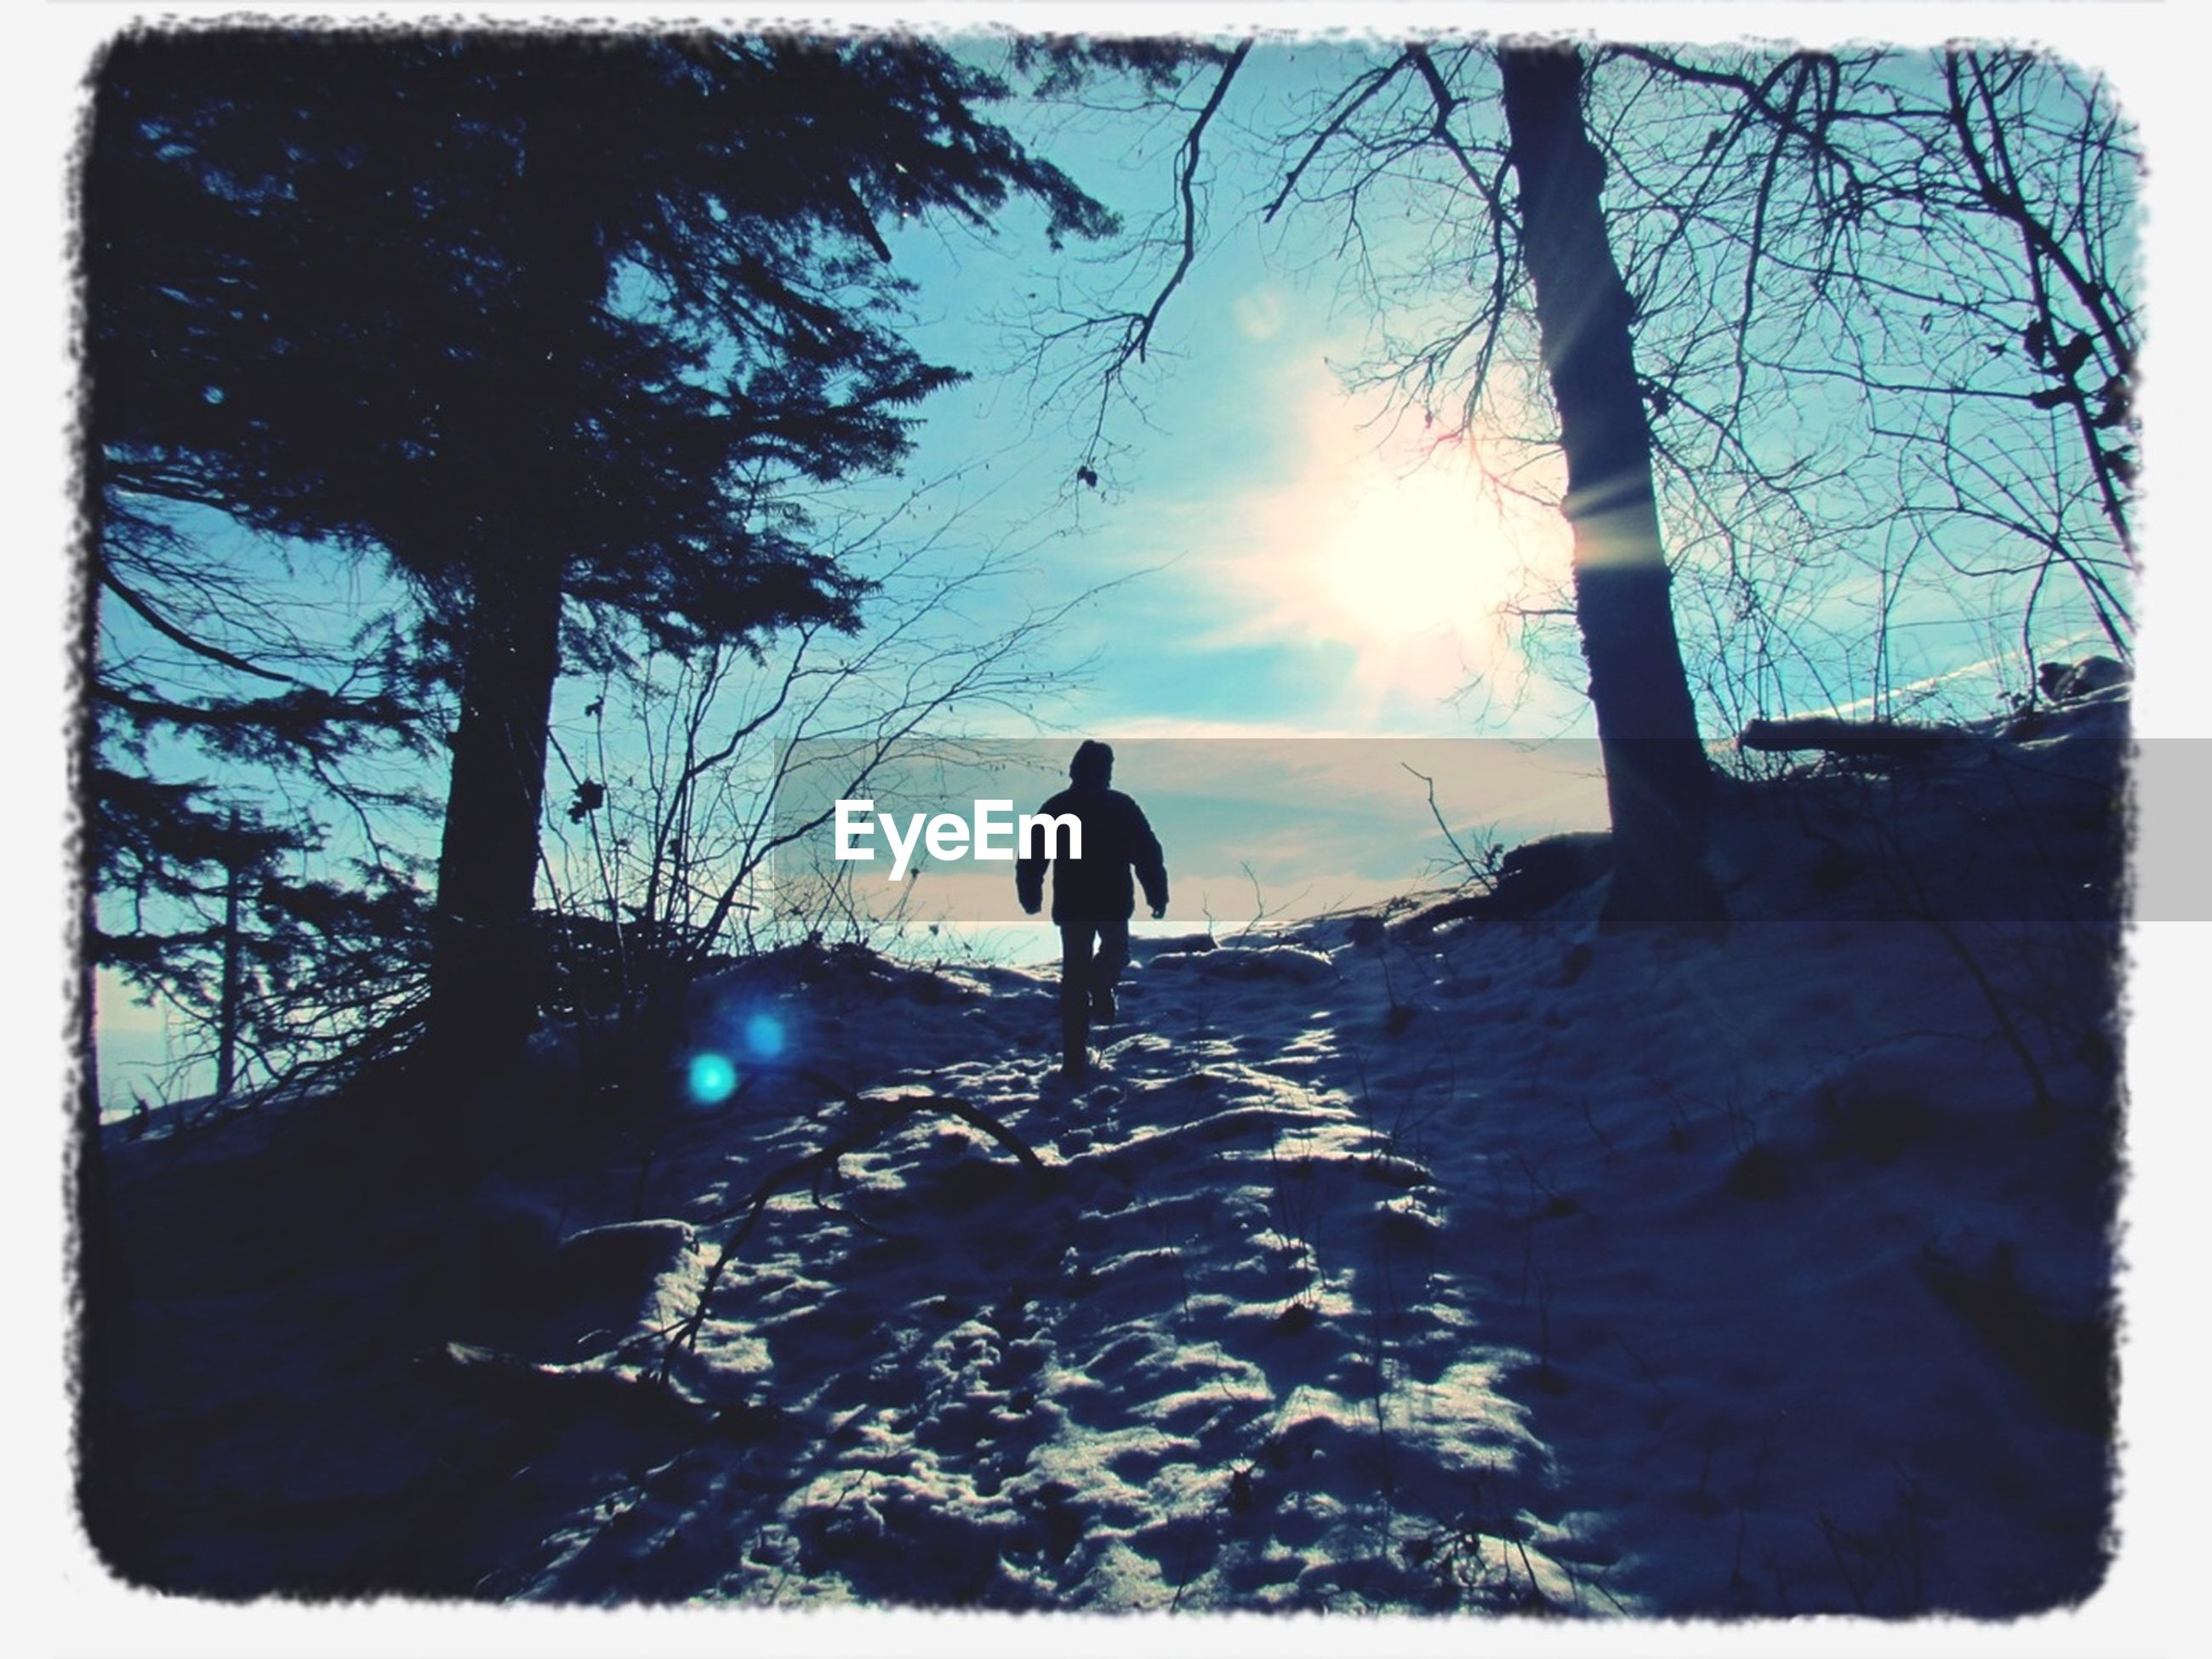 snow, winter, cold temperature, sun, tree, sunlight, season, bare tree, silhouette, full length, nature, transfer print, sky, walking, sunbeam, weather, tranquility, auto post production filter